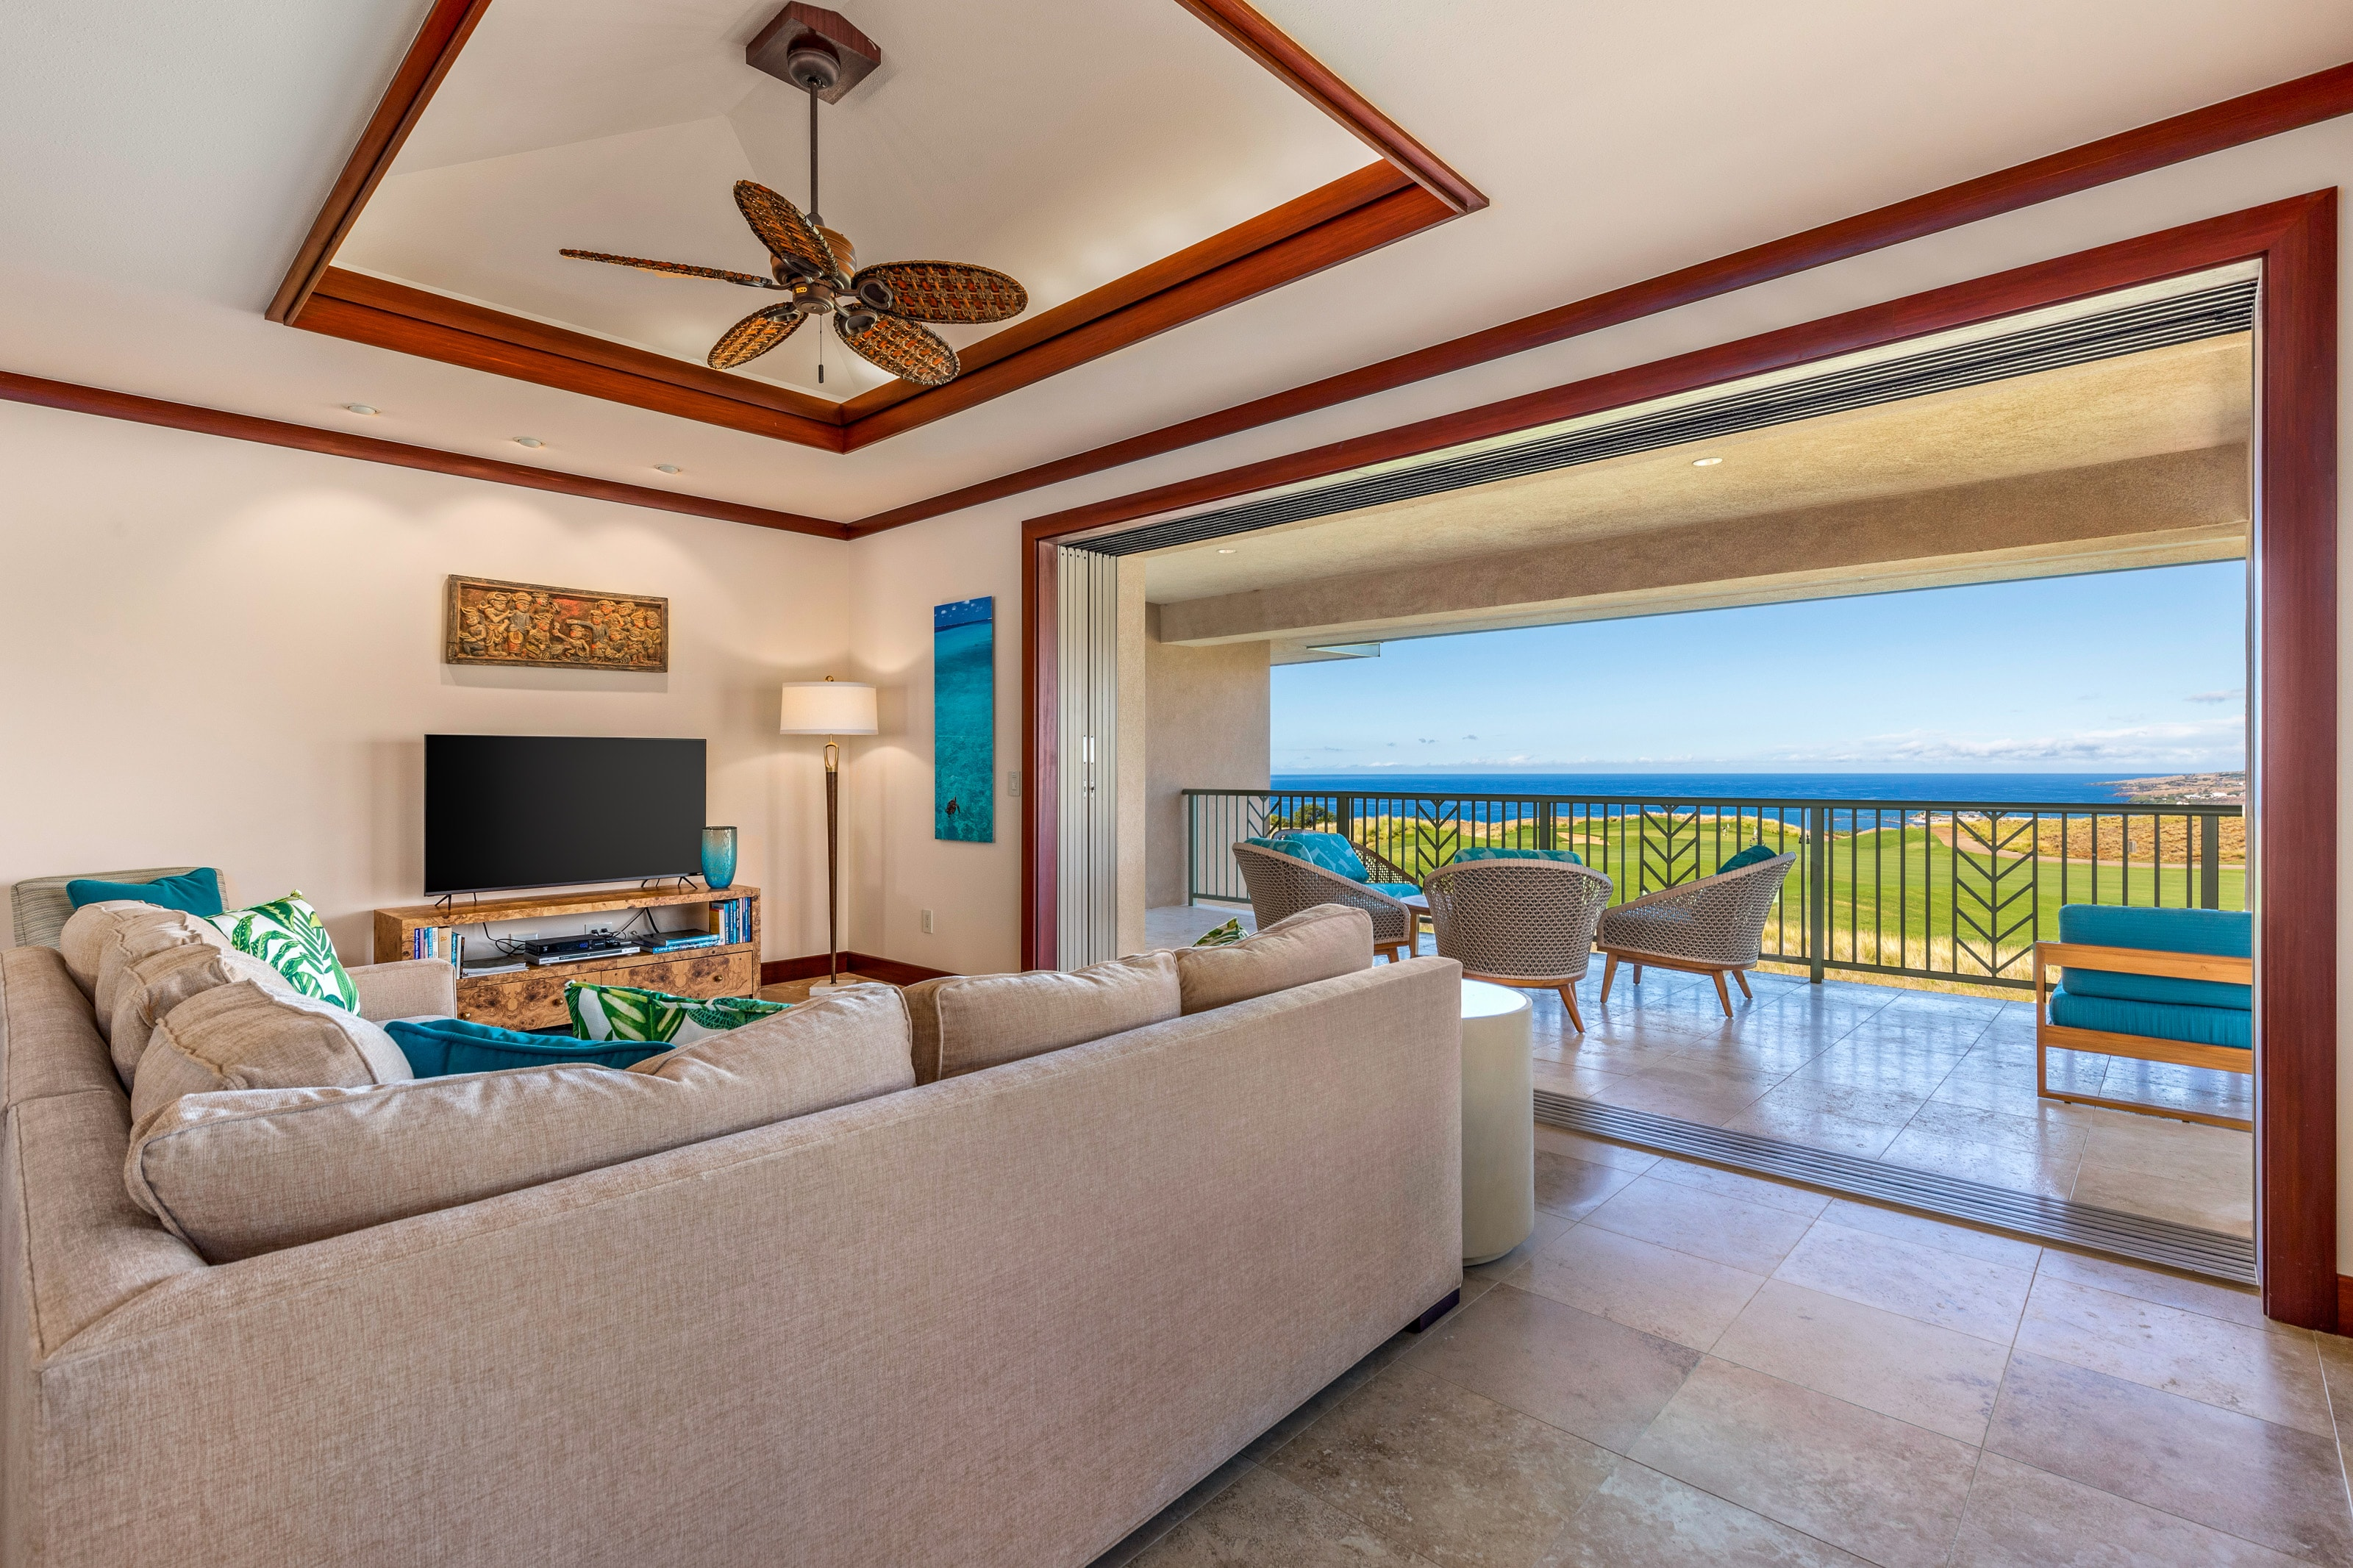 Fairway-Adjacent Home with Unobstructed Ocean Views & Chef's Kitchen